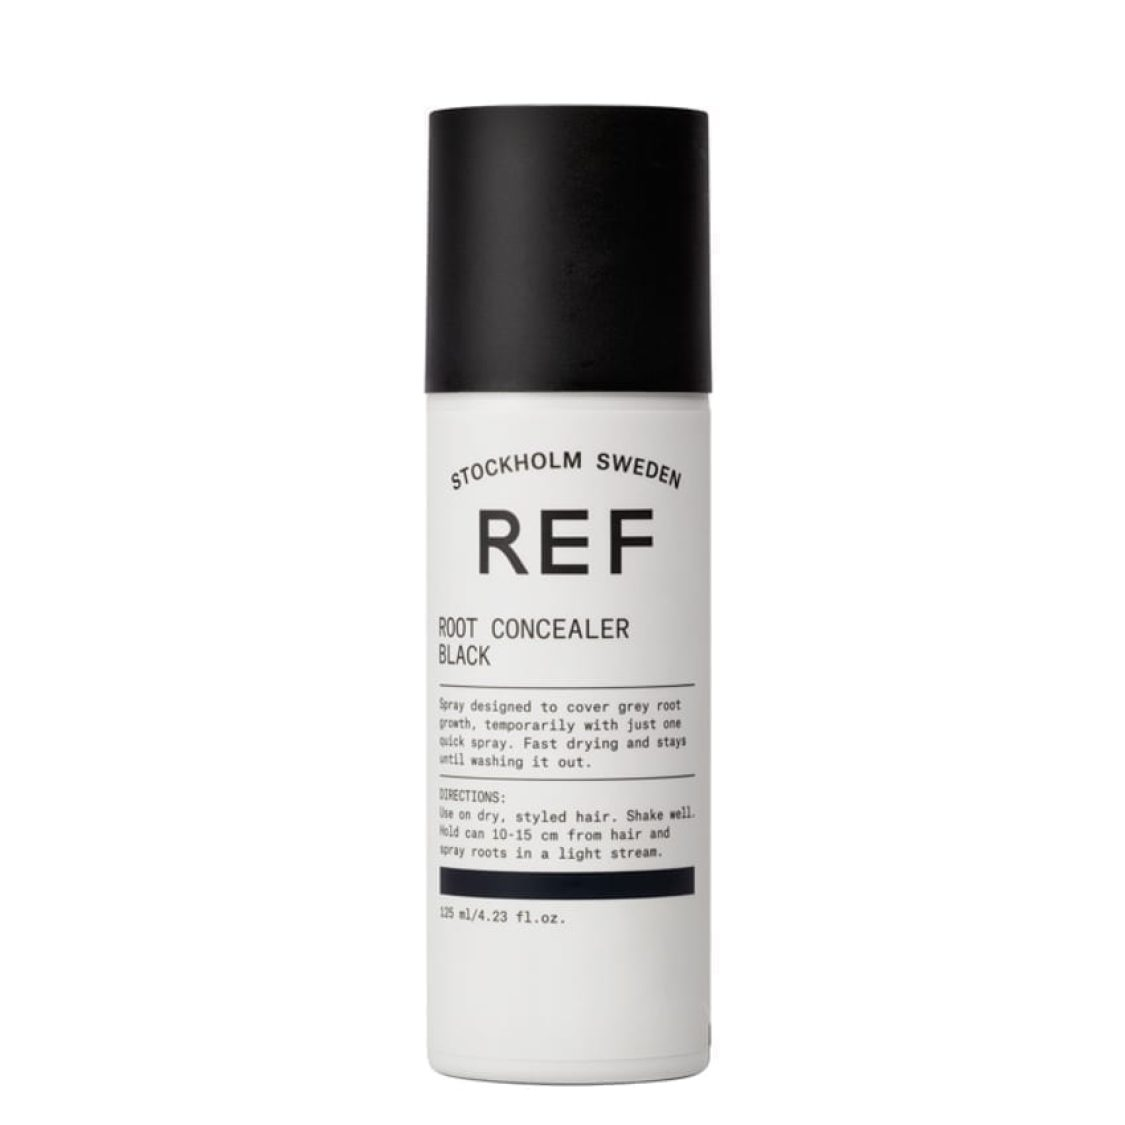 REF - Root Concealer Black 125ml